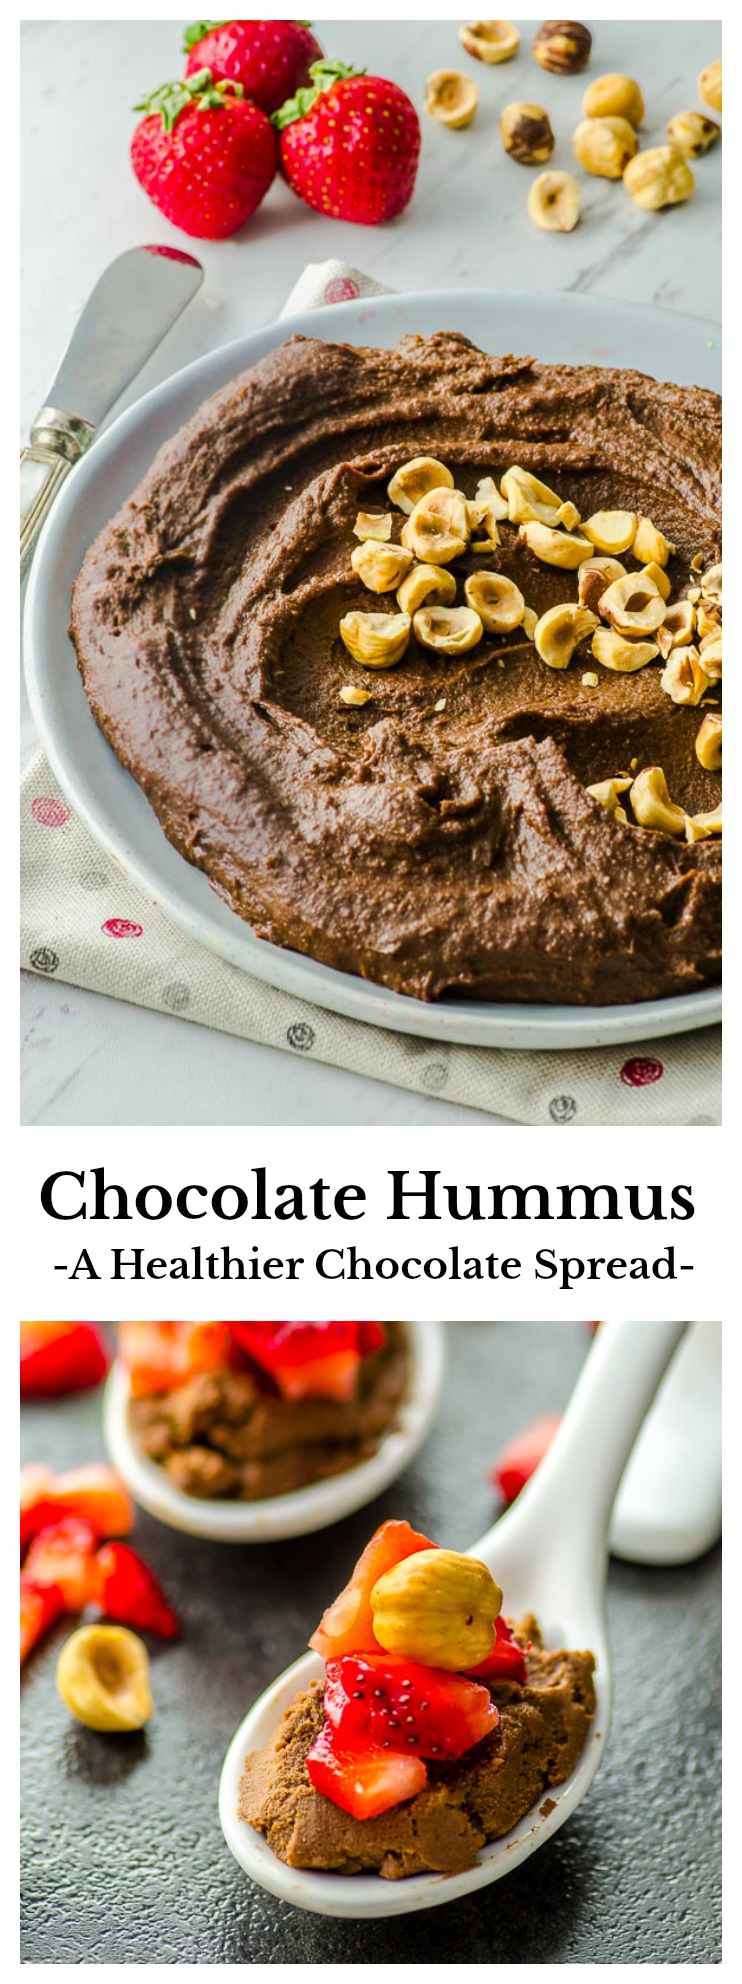 Our Chocolate Hummus recipe brings together the rich taste of chocolate with the creaminess of ground chickpeas for a sweet and healthy dessert-spread that's easy to prepare without any cooking time.